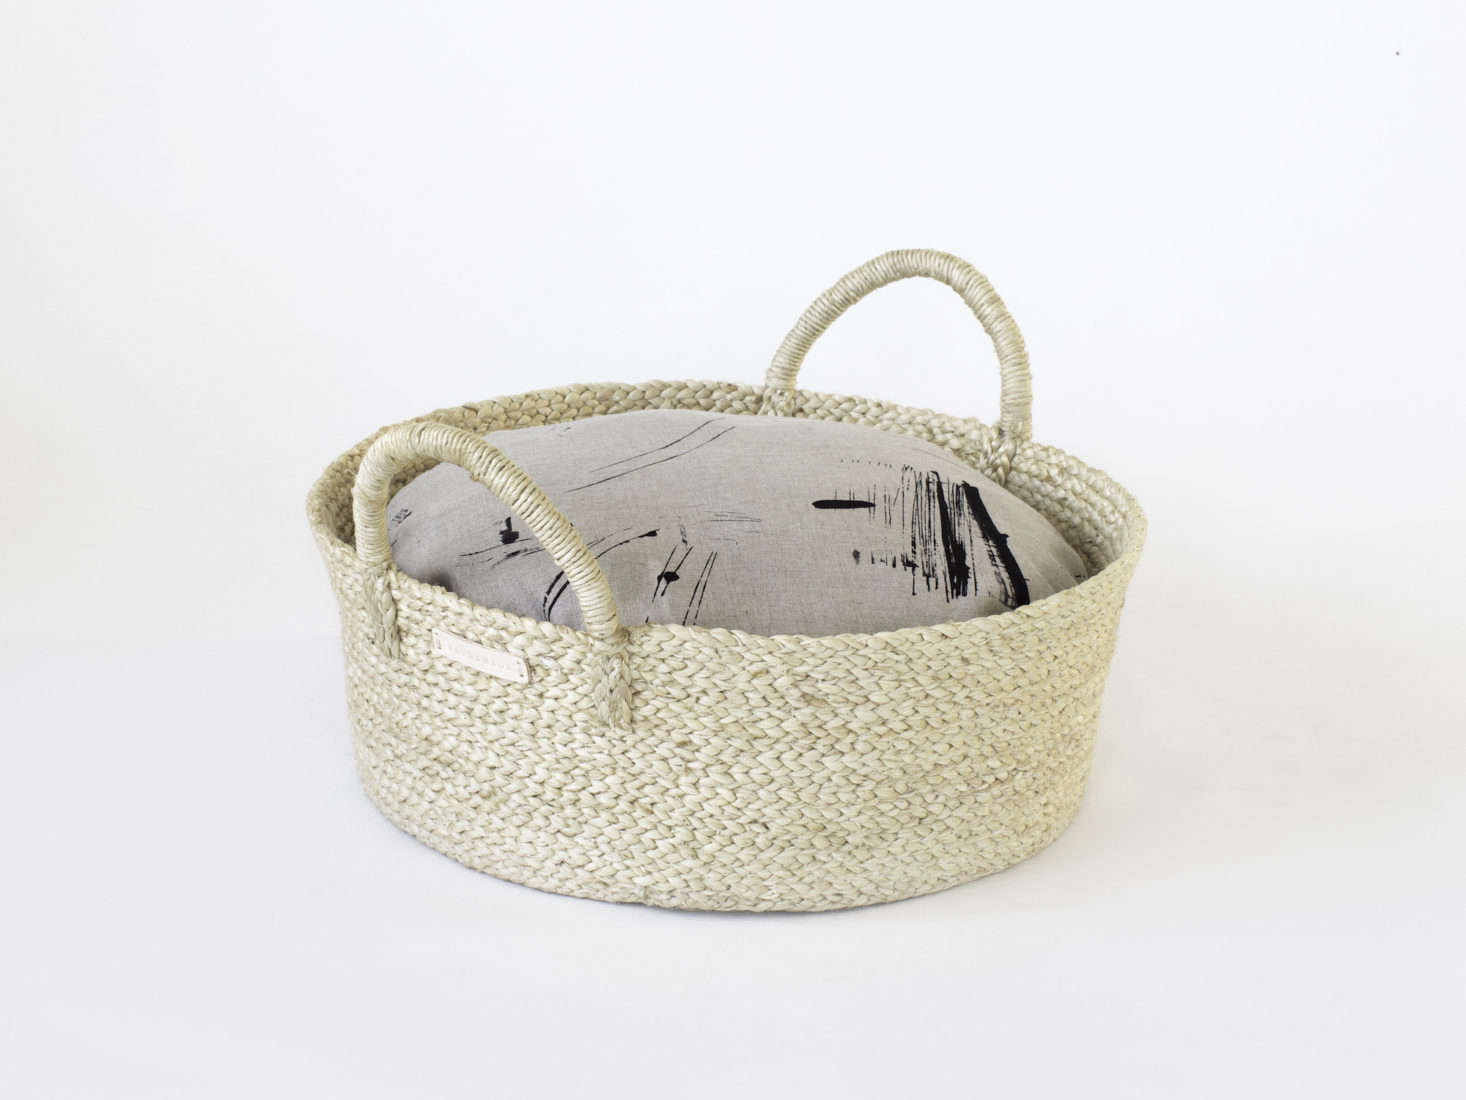 Basket pet bed from Faunamade with modern black and tan linen patterned cover for cats and dogs